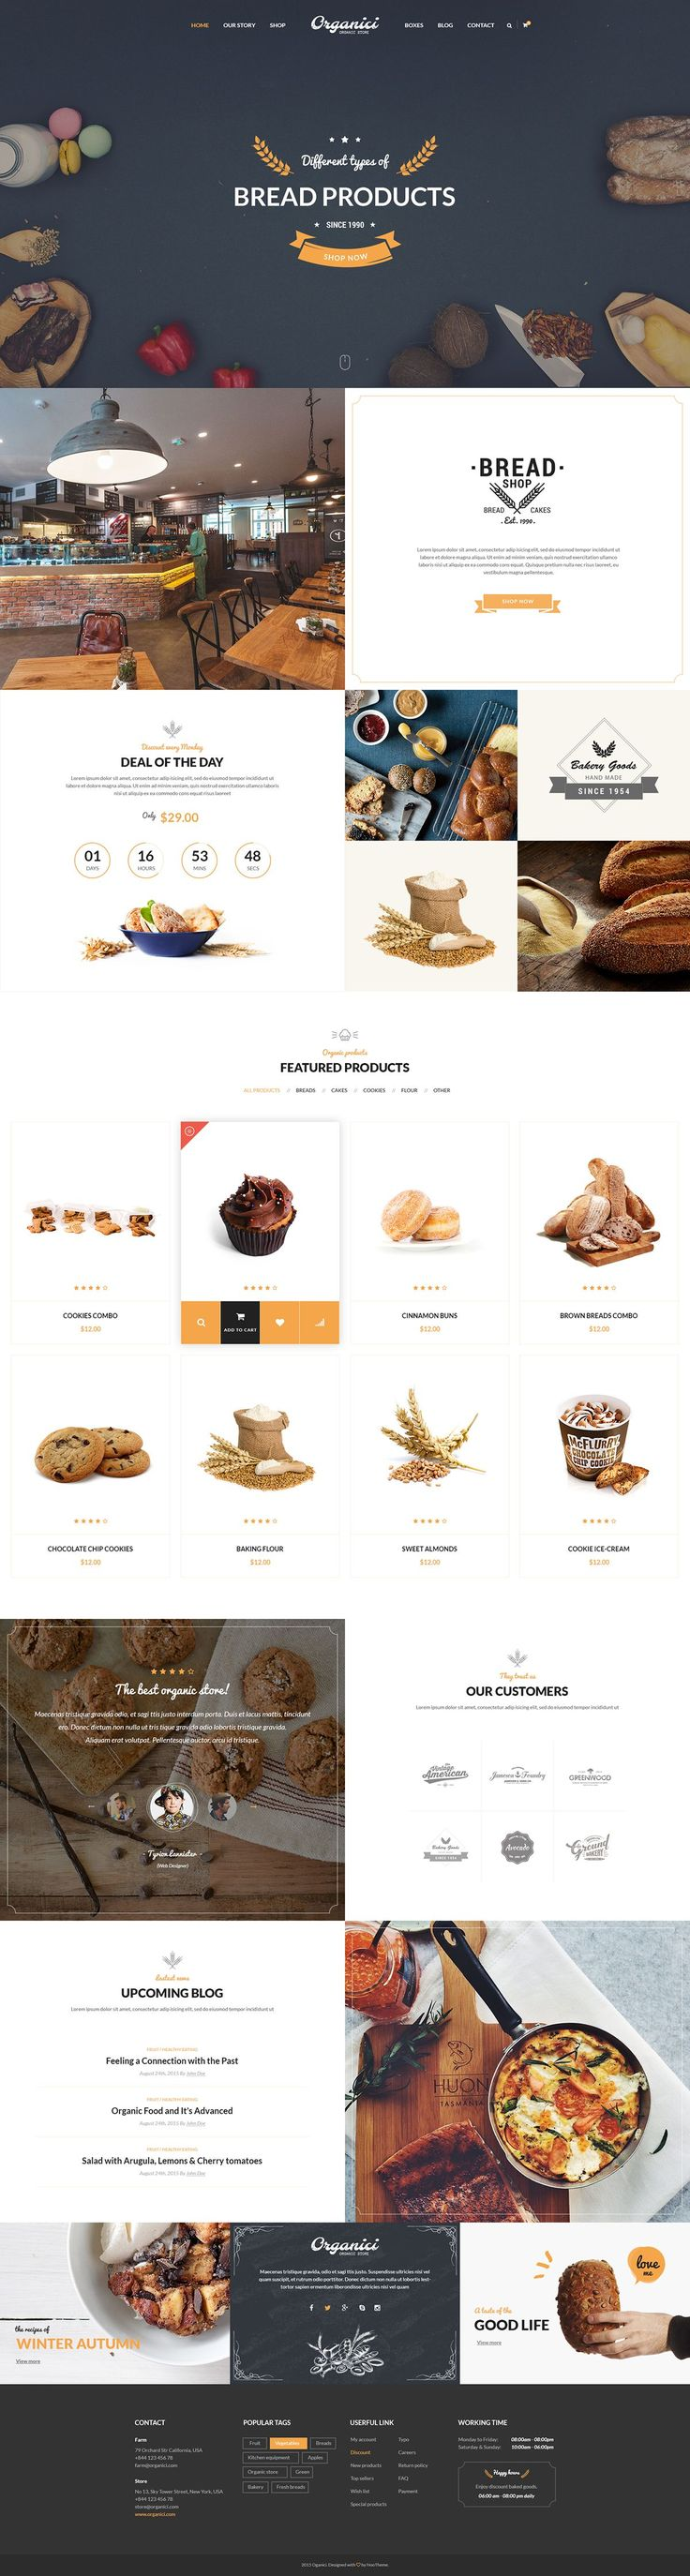 Organici is the premium PSD template for Organic Food Shop. Built especially for any kind of organic store: Food, Farm, Cafe…, Organici brings in the fresh interface with natural and healthy style. The template includes essential pages for a Organic Store… #WebDesign